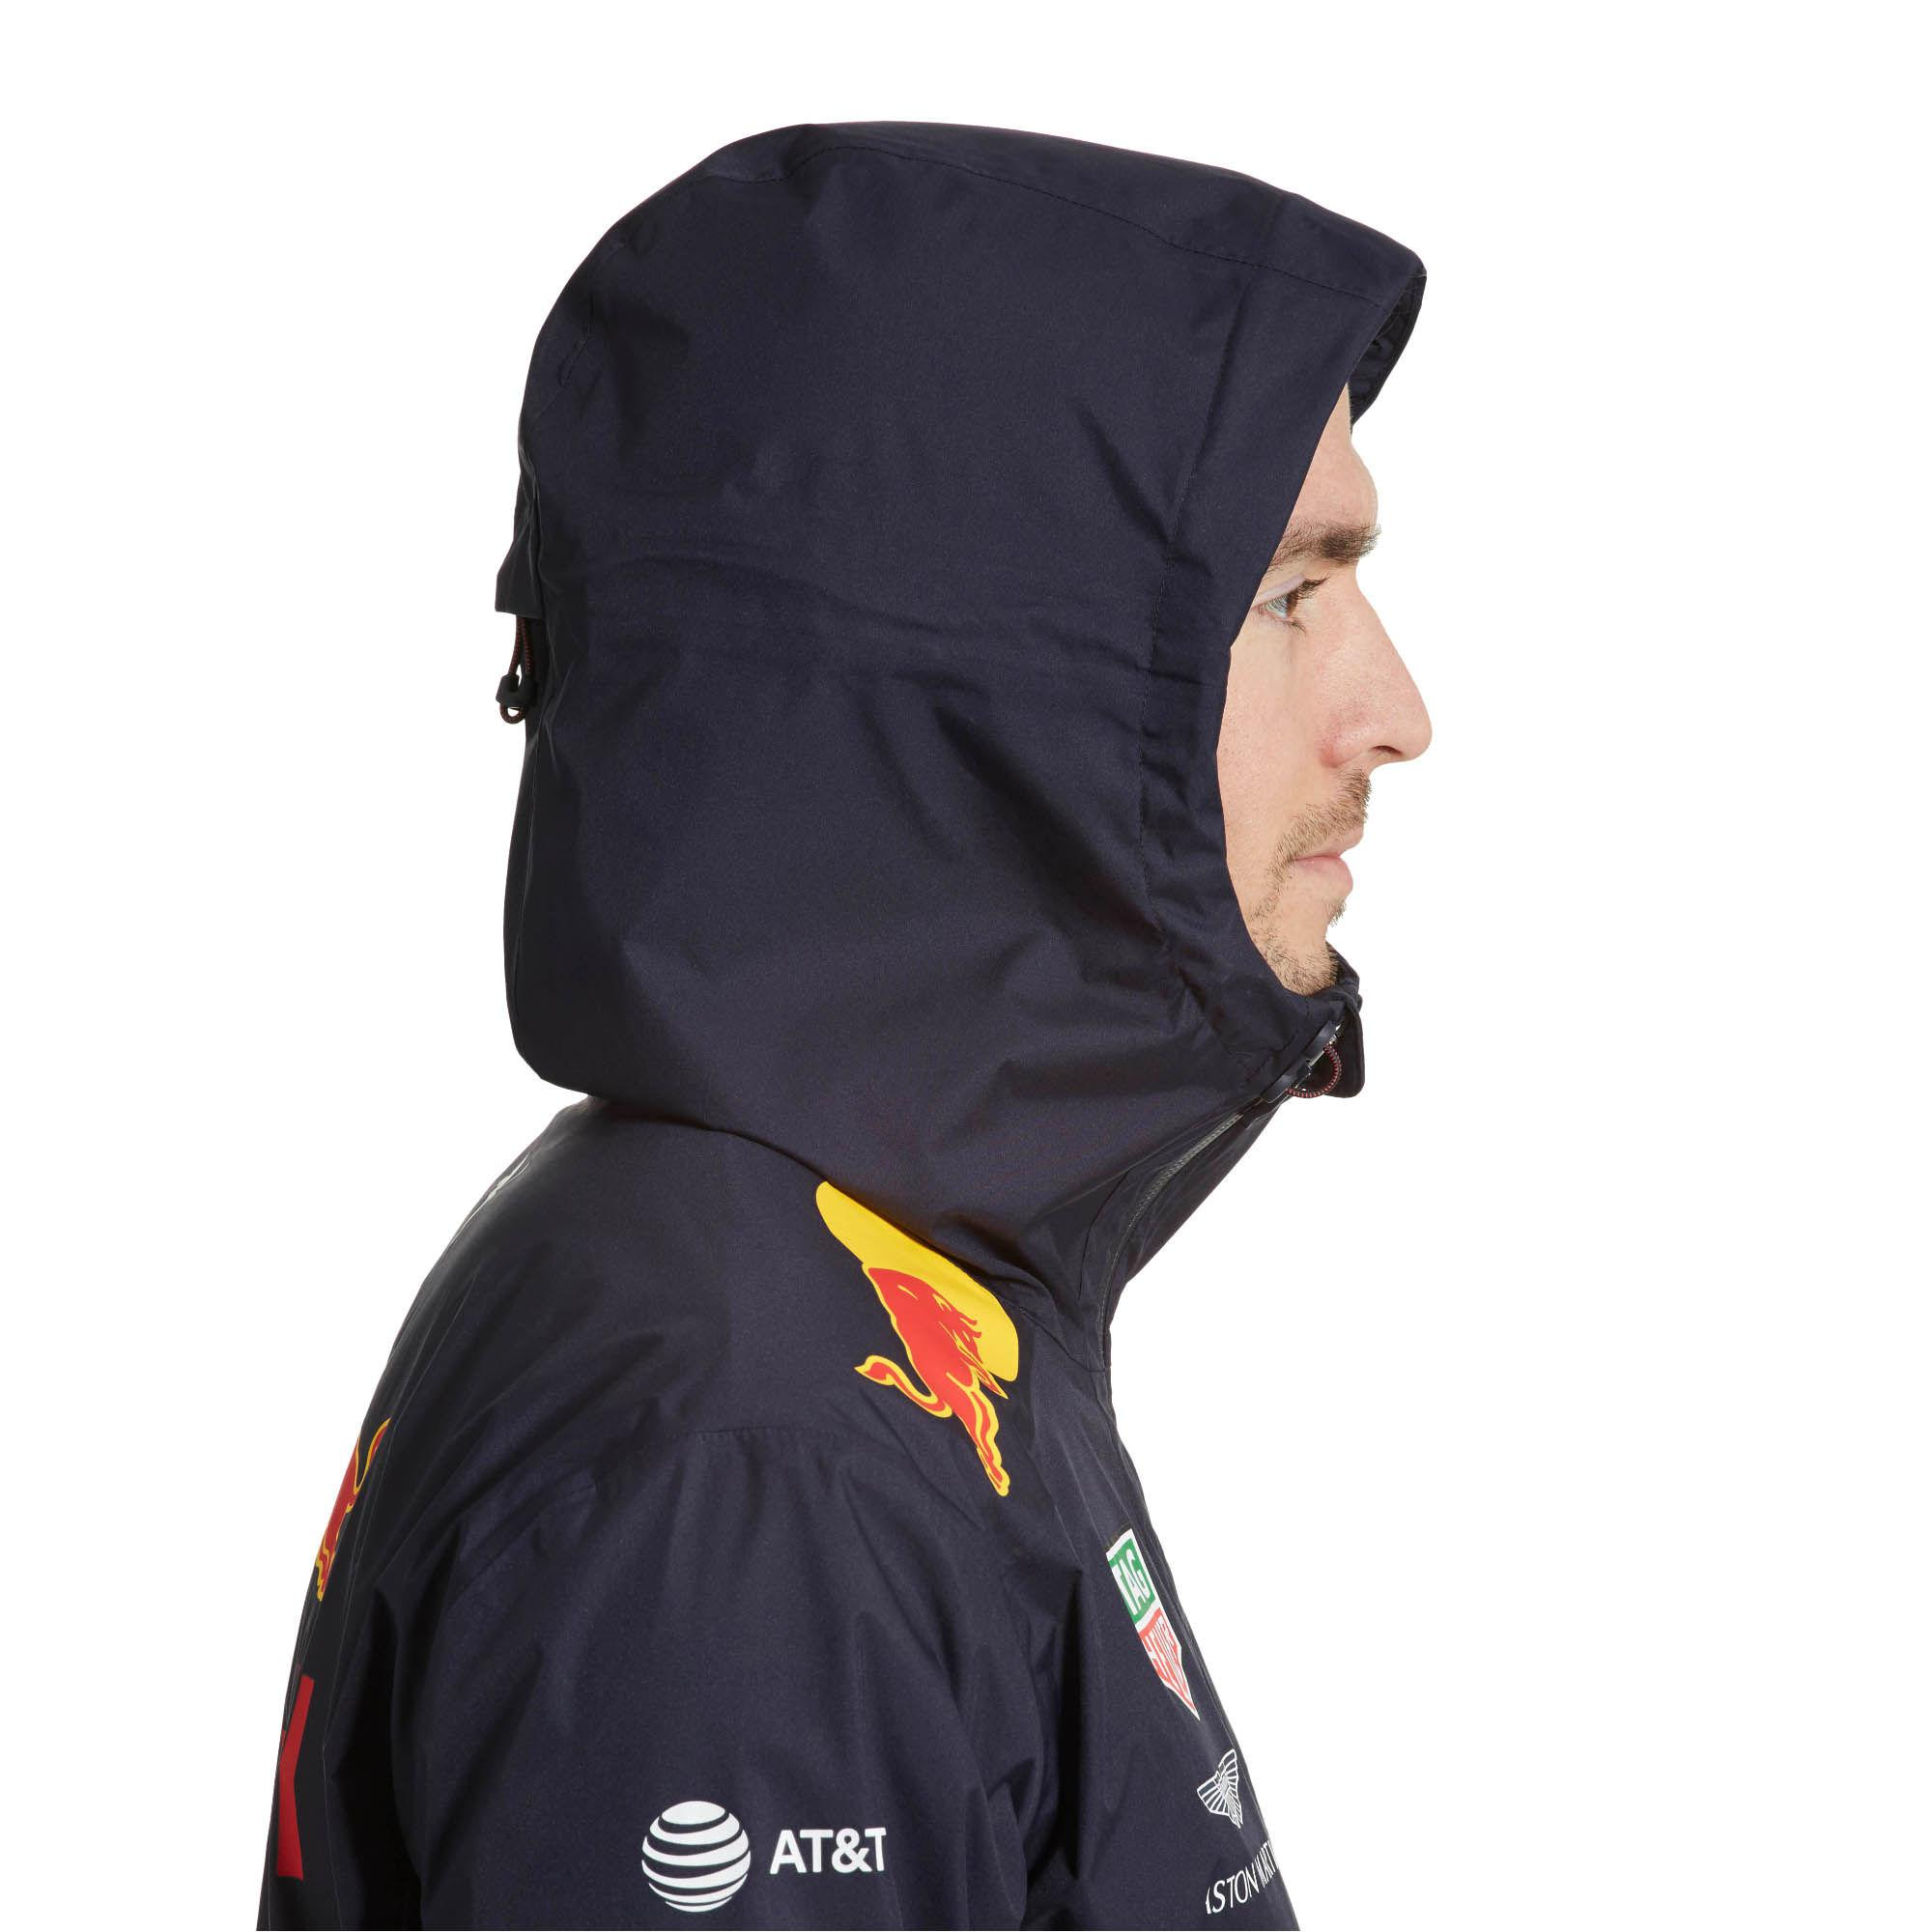 e918ad6acc2 Lyst - PUMA Red Bull Racing Men s Team Rain Jacket in Blue for Men